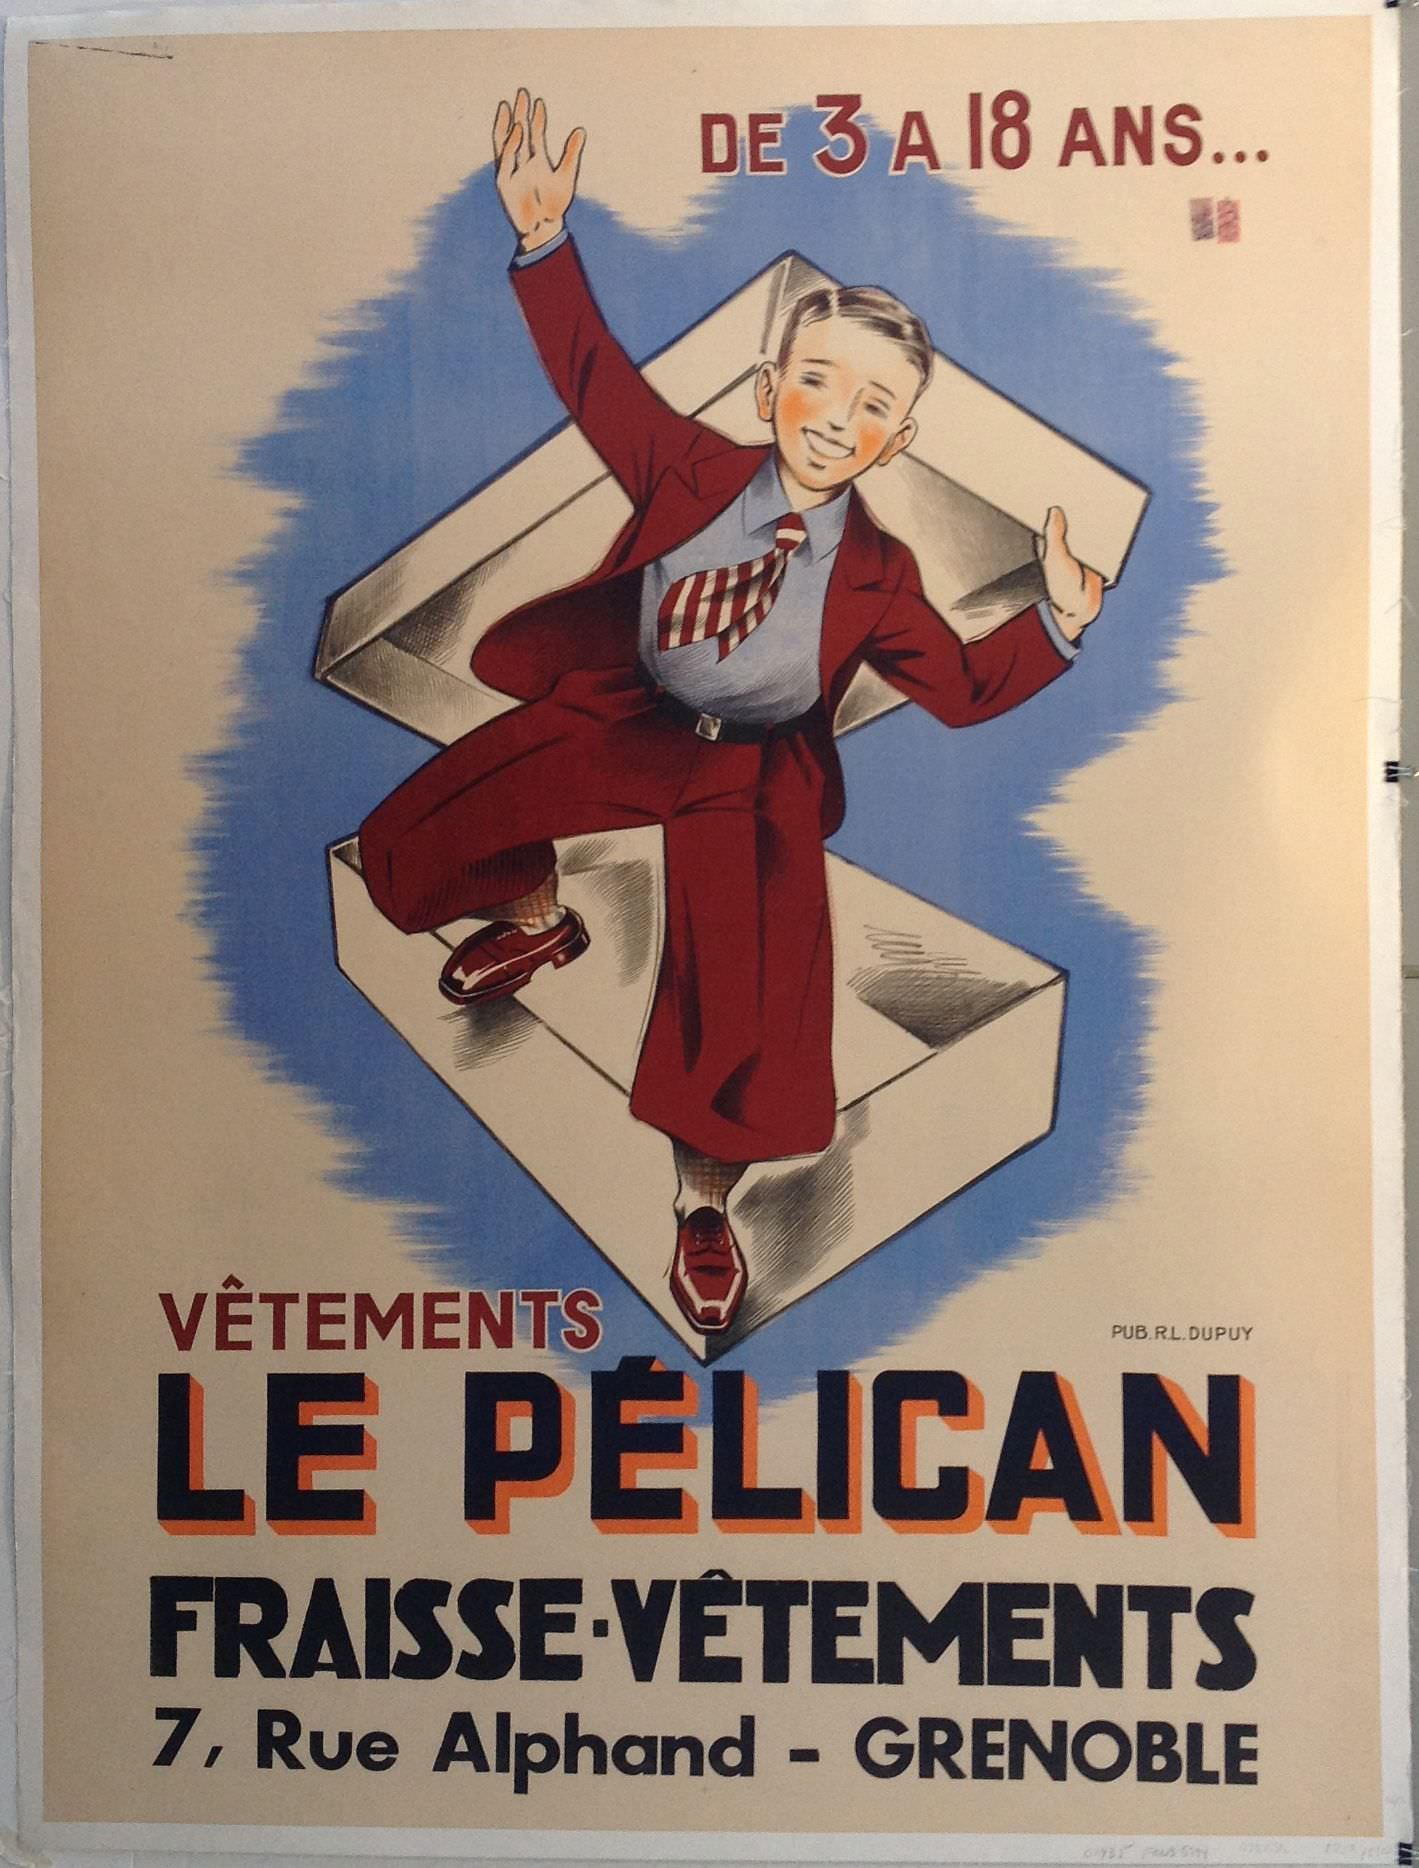 Le Pelican Fraisse Vetements